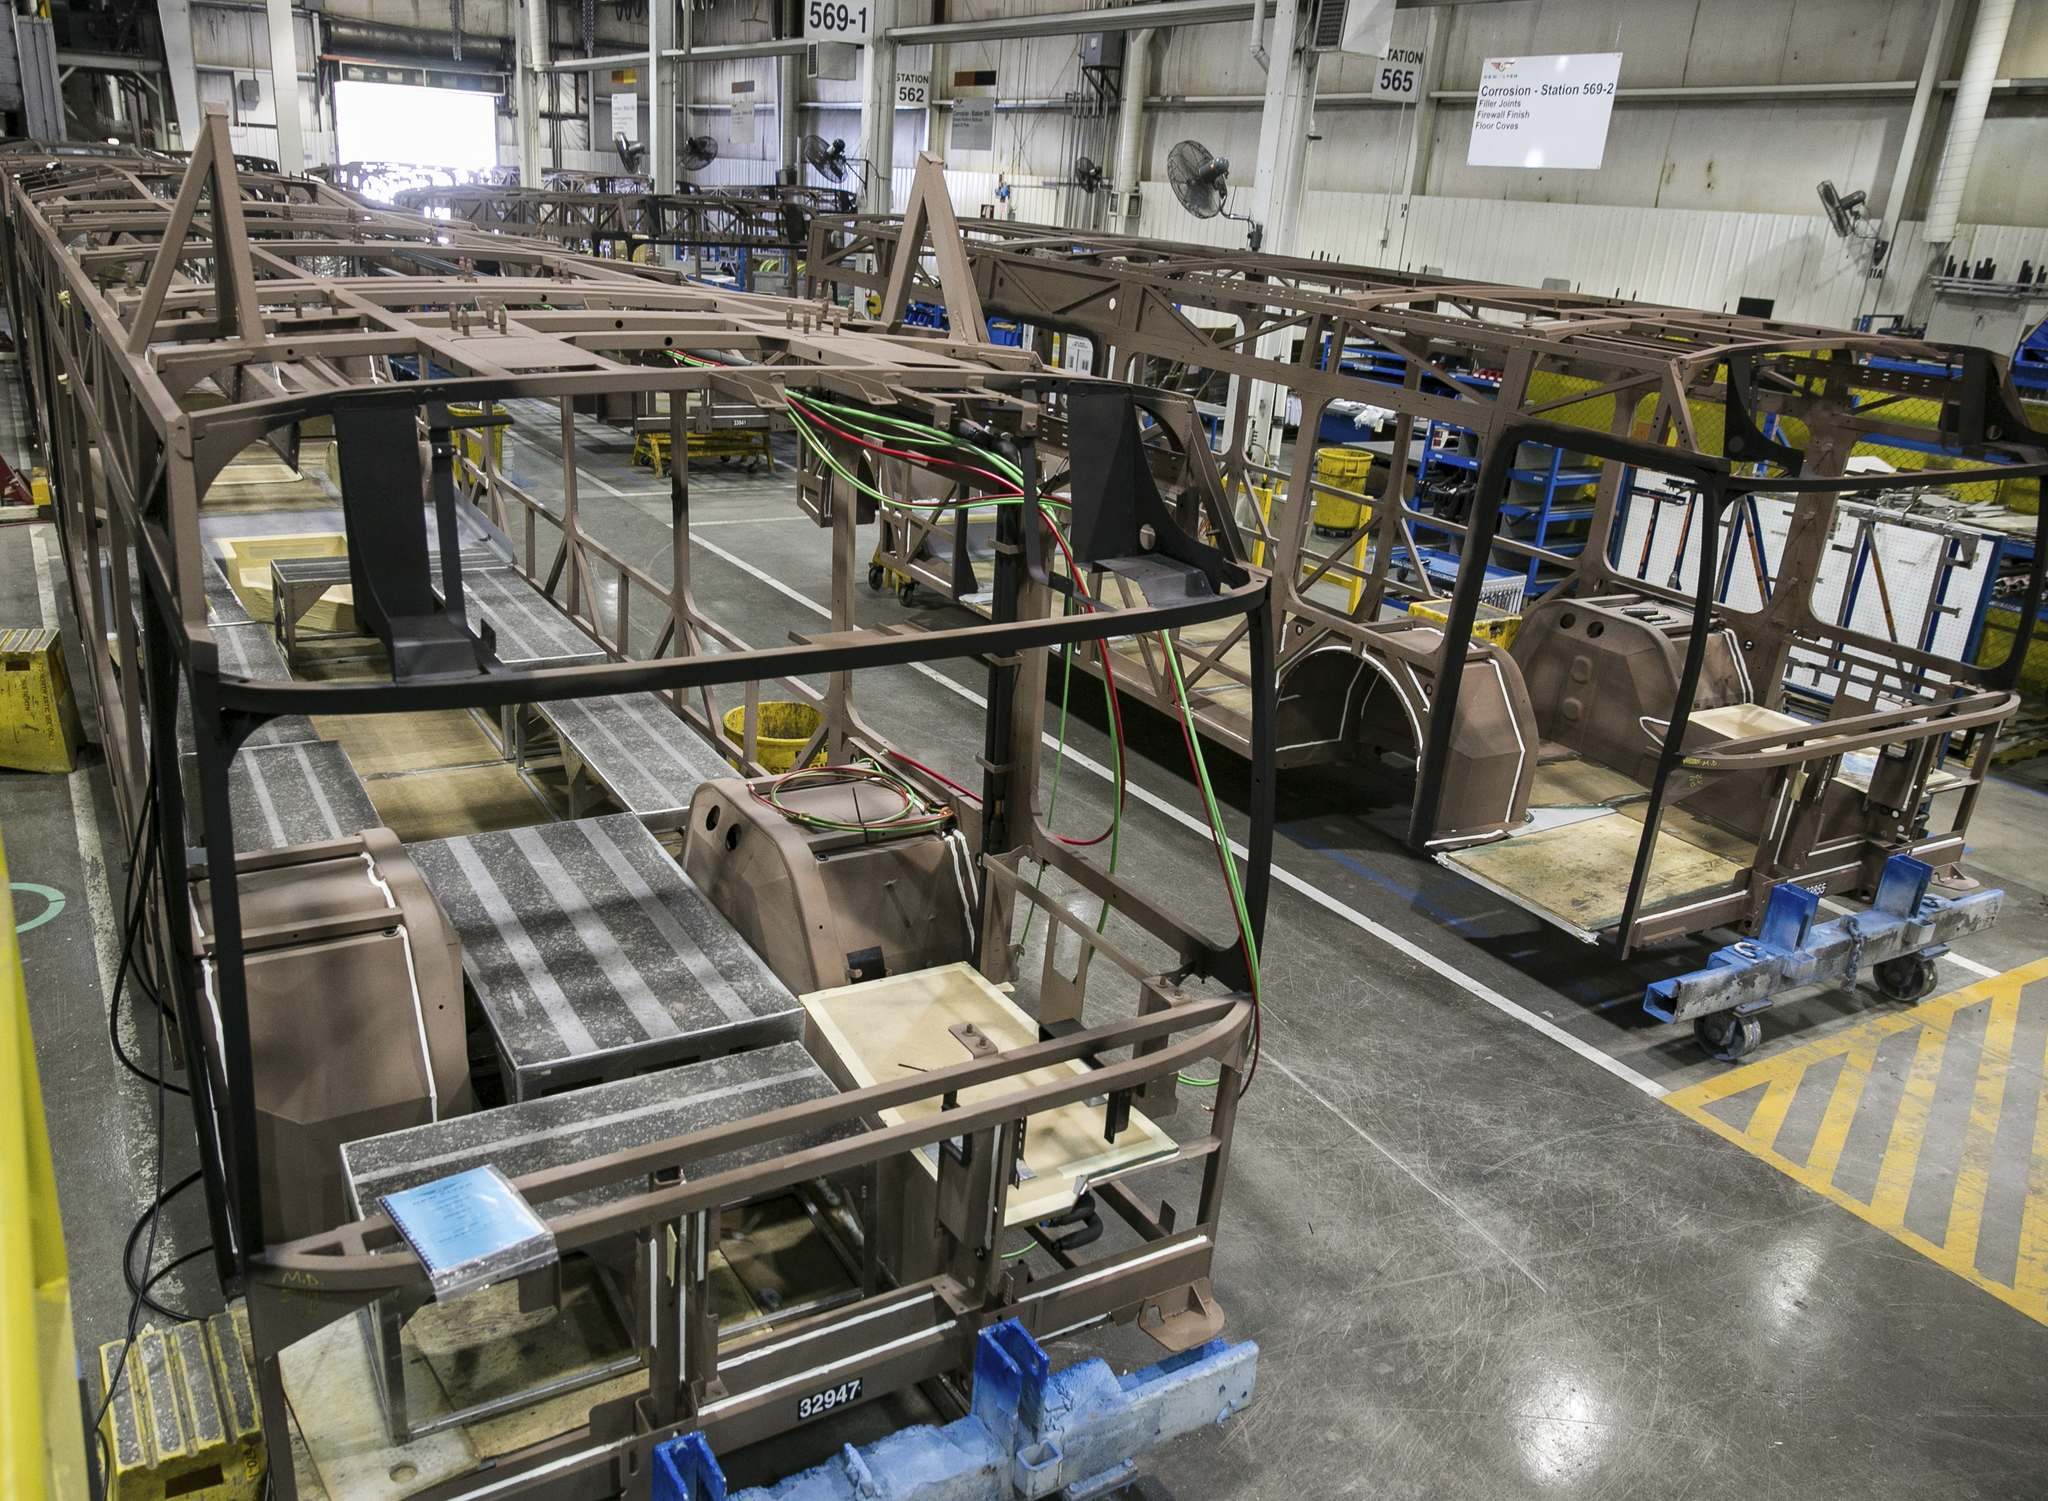 Melissa Tait / Winnipeg Free Press files</p><p>The manufacturing line at NFI. Rather than tie up cash starting production of vehicles it might not have the parts to complete, the bus maker decided to scale back production across the board.</p>